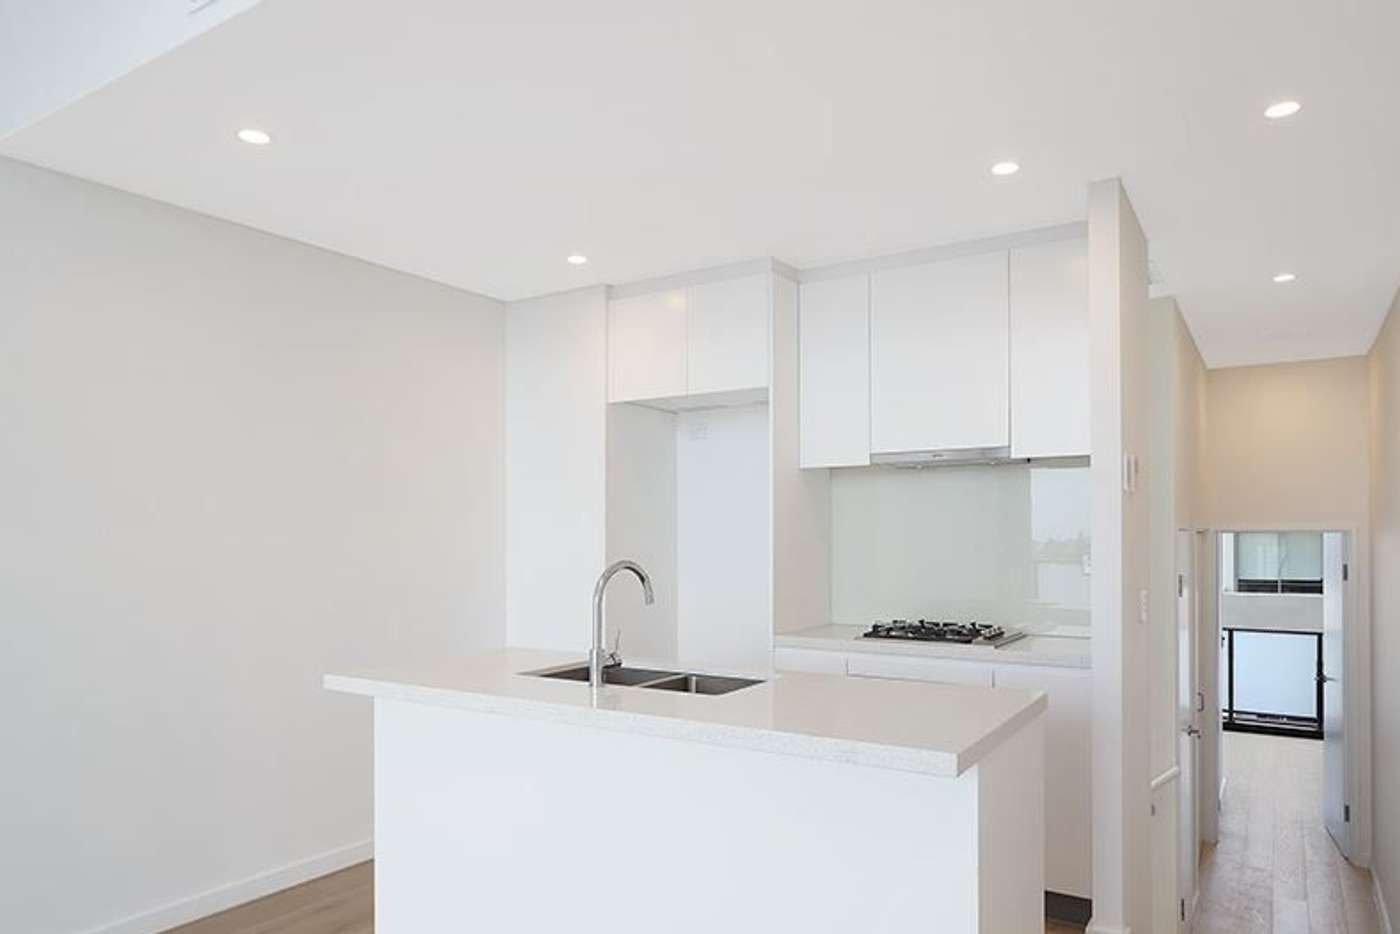 Main view of Homely apartment listing, 408/1-3 Robey Street, Maroubra NSW 2035